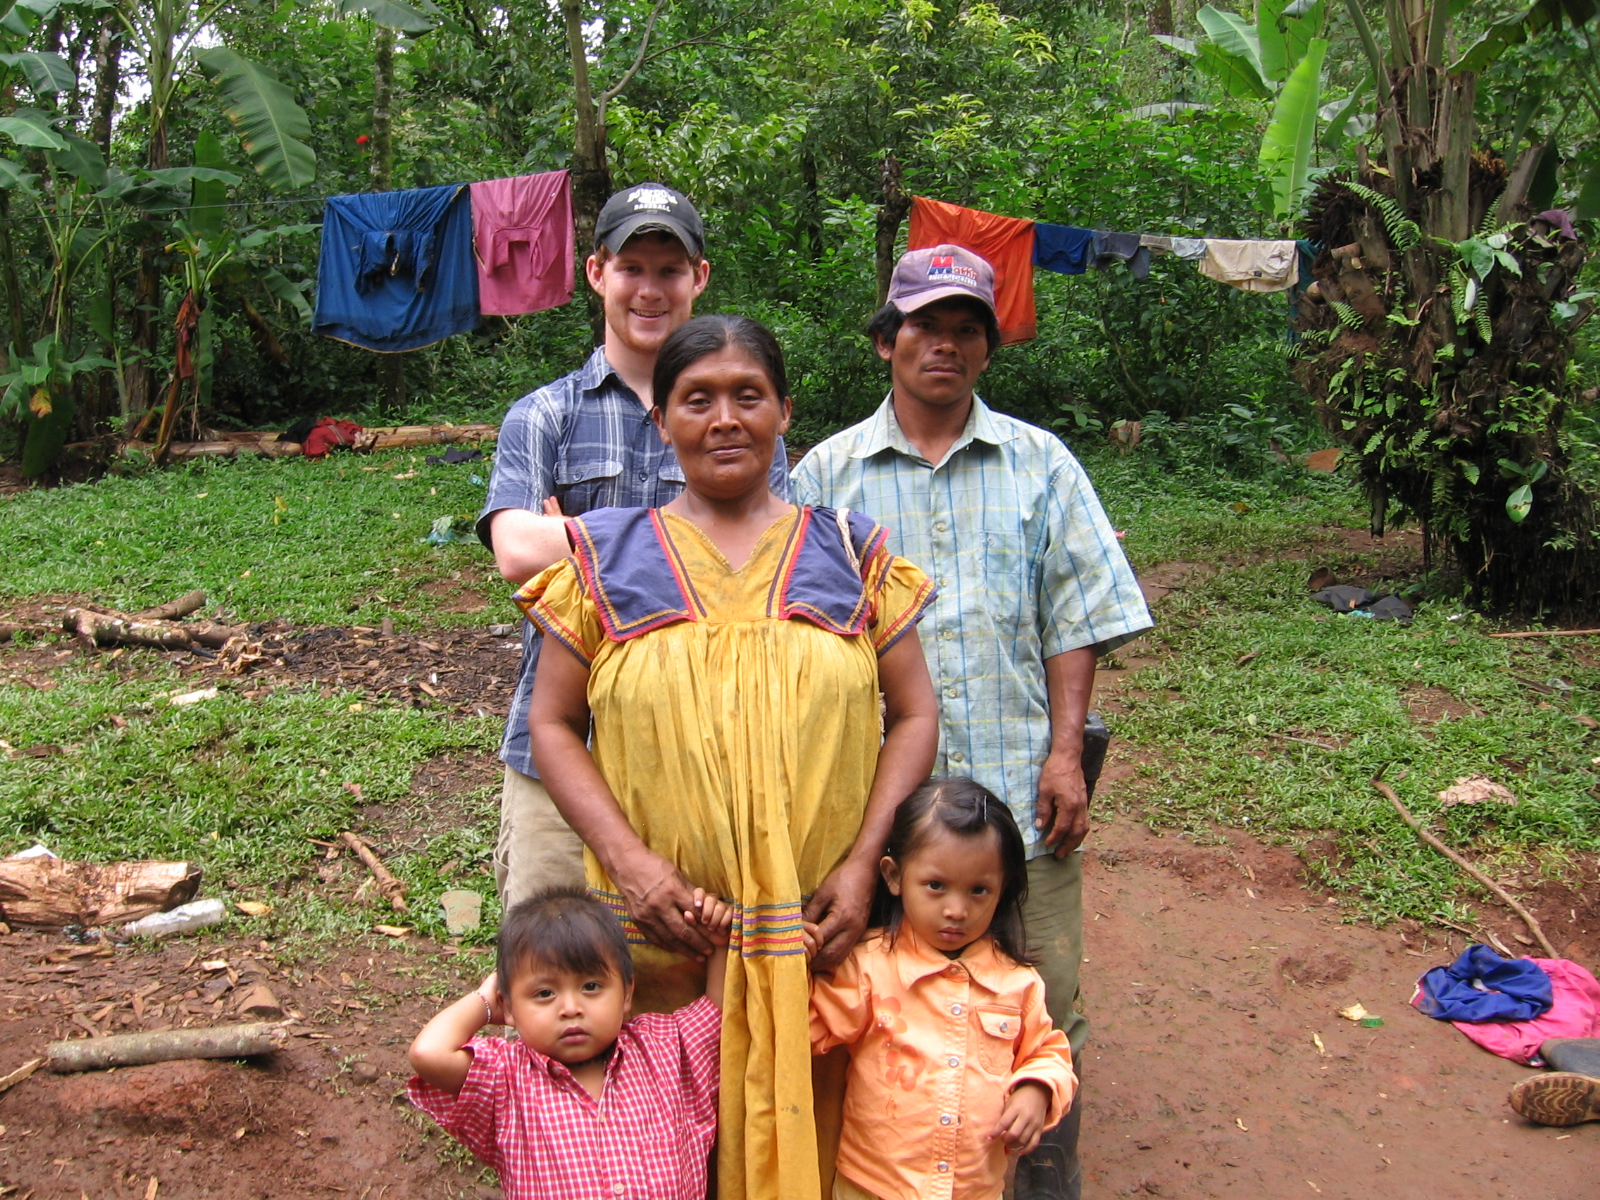 Elena, Olmedo, and Yazmin welcomed me warmly into their home.